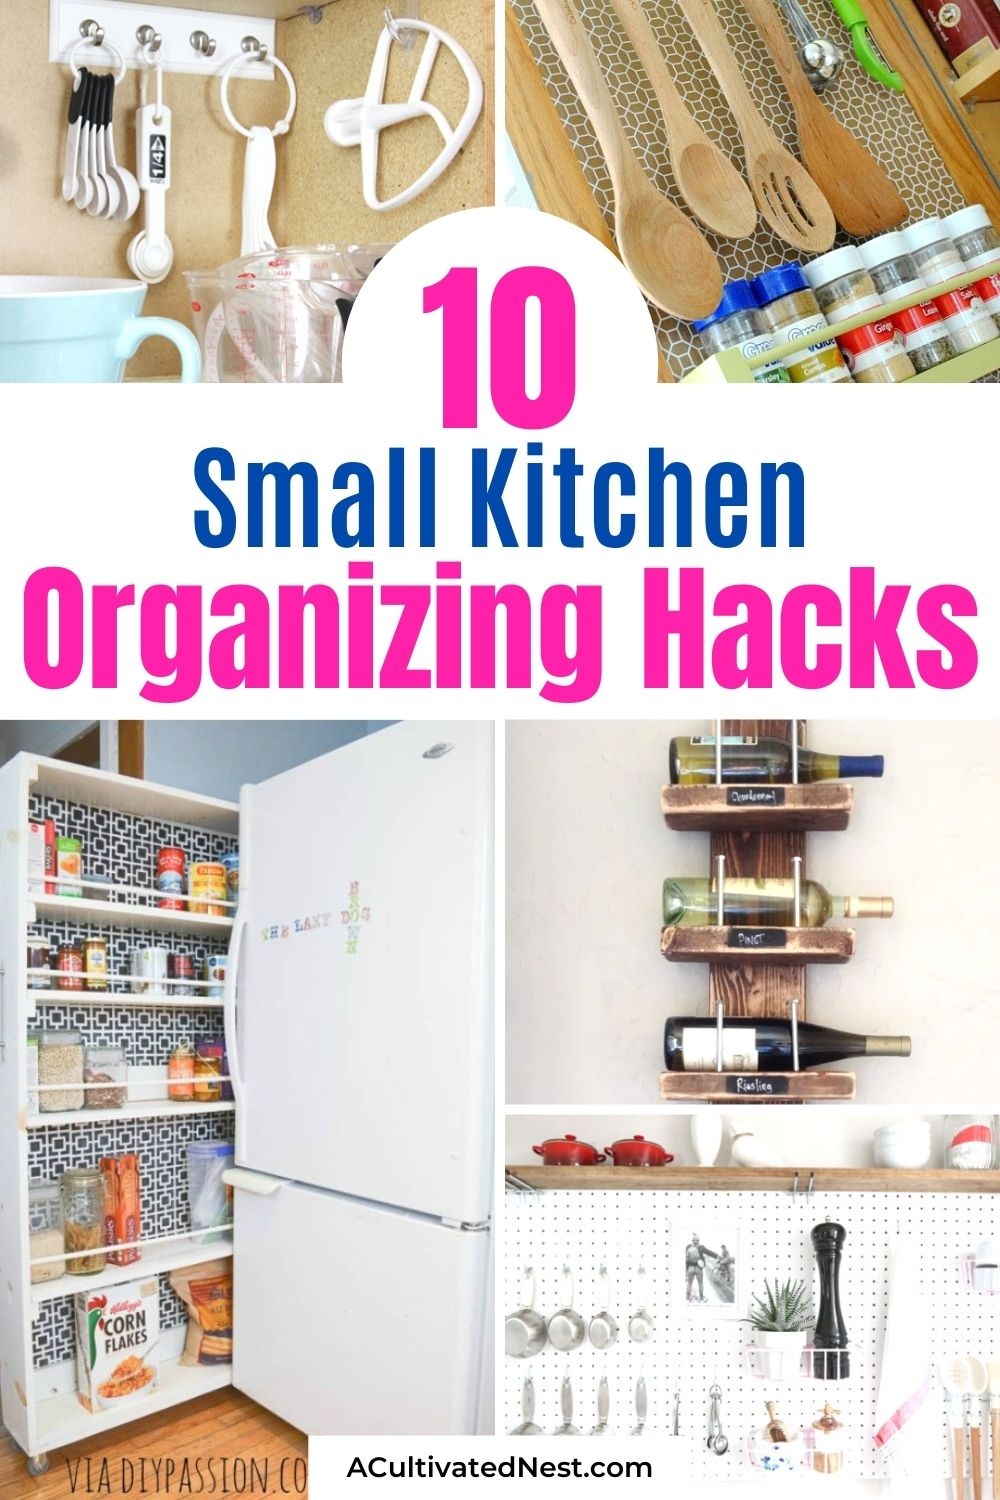 10 Ideas For Organizing A Small Kitchen- Organizing your small kitchen will be a lot easier if you know these 10 small kitchen organizing hacks! There are so many clever ways to create storage space in a small kitchen!   how to organize a small space, organize an apartment kitchen, organize a tiny kitchen, #kitchenOrganization #organize #homeOrganization #organizingHacks #ACultivatedNest